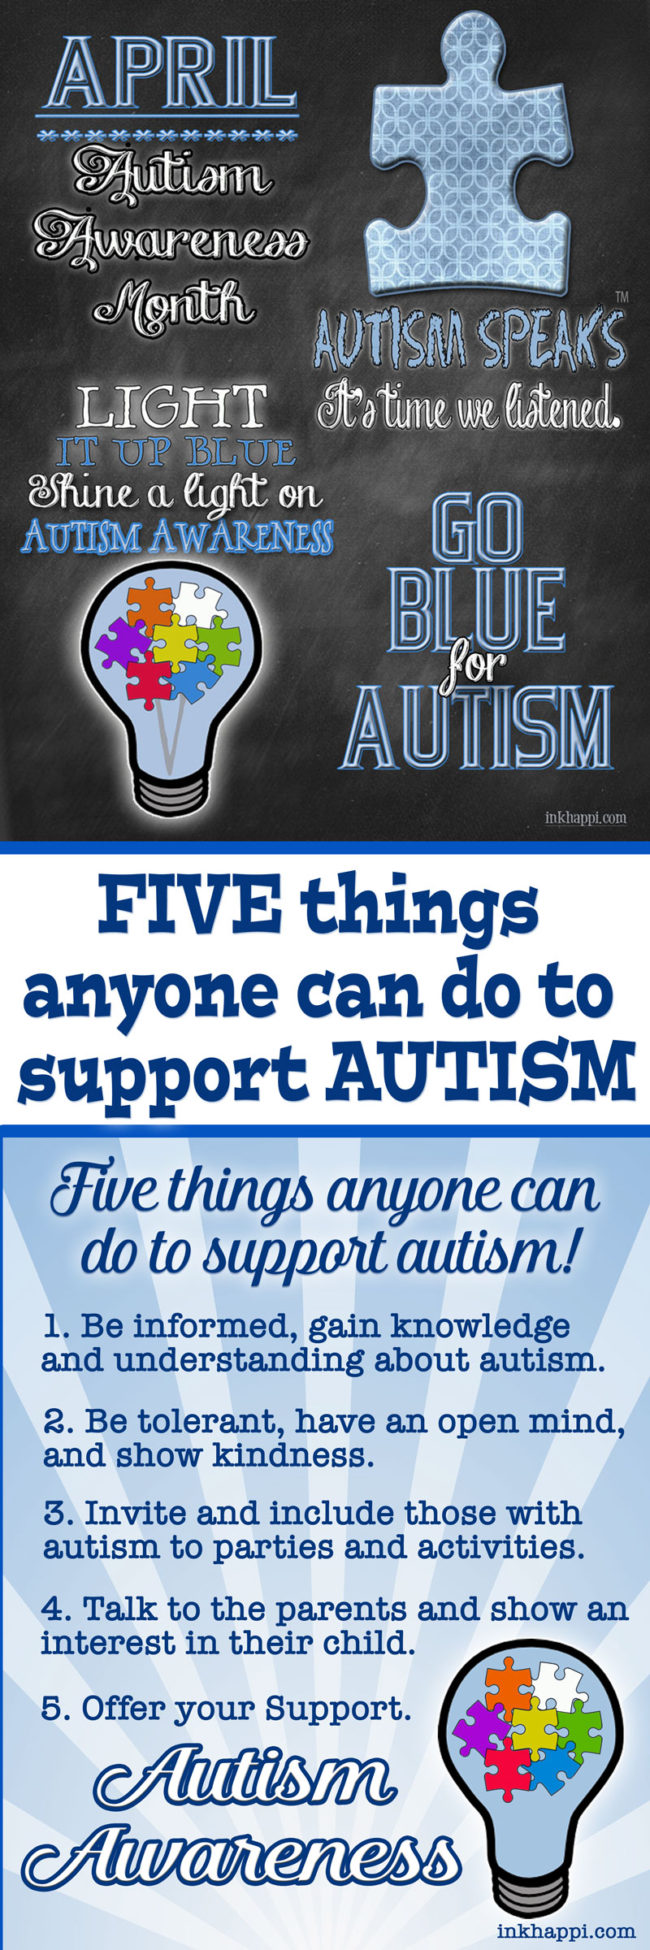 Autism support: Five things everyone can do to support autism!